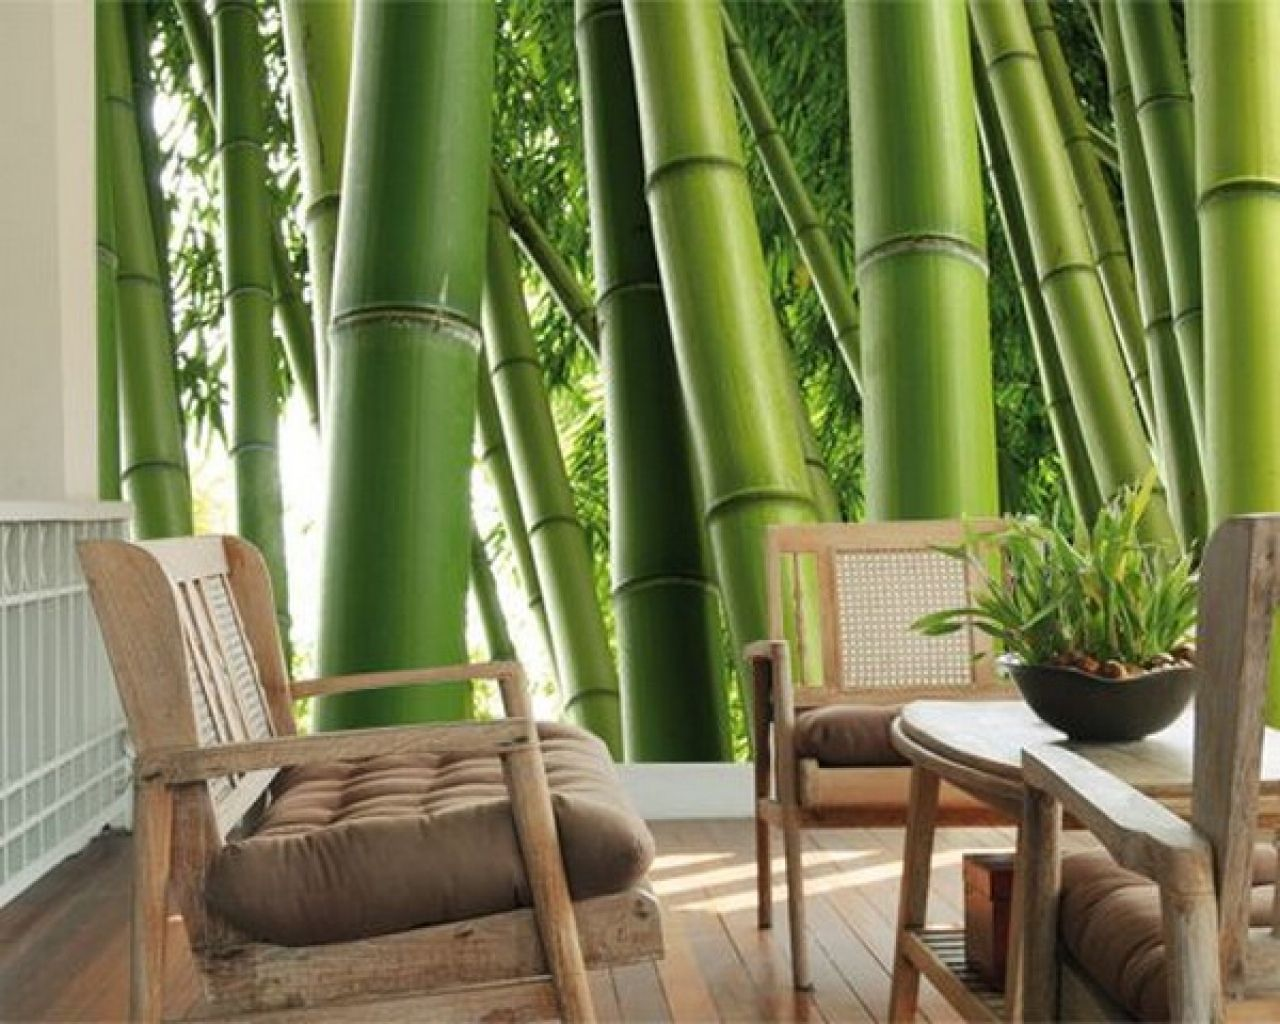 Home Interiorsmall Living Room Decor With Stunning Green Bamboo Captivating Interior Design Pictures Of Small Living Rooms Review